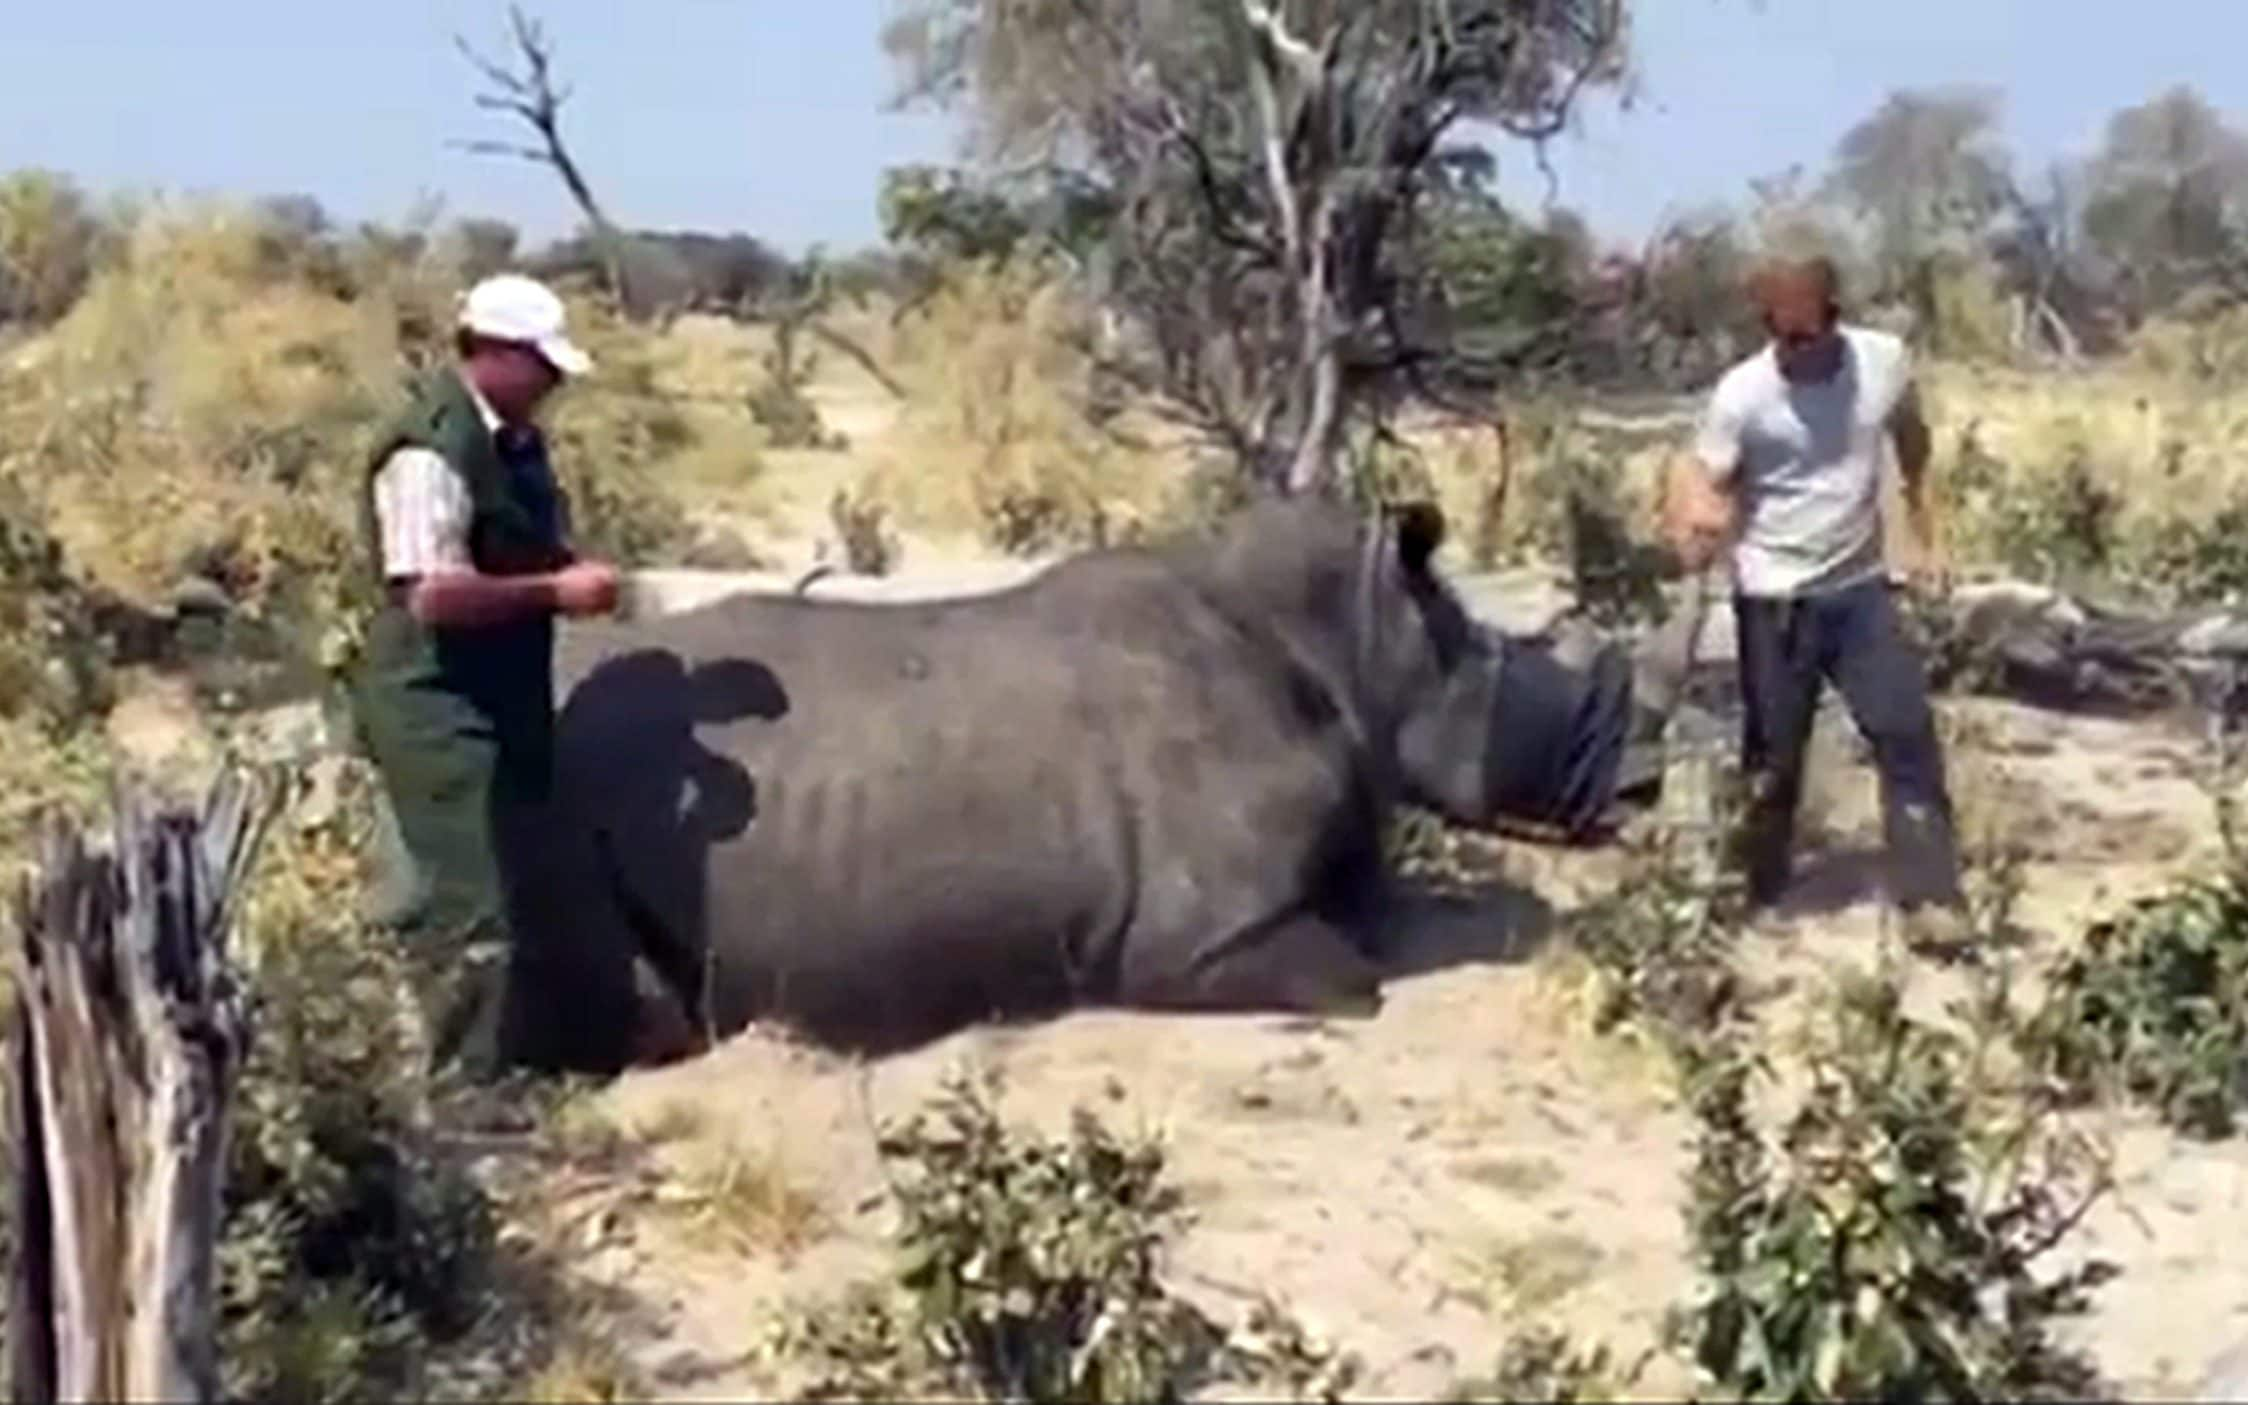 Prince Harry during his visit to southern Africa as he helps sedate a Rhino in Botswana